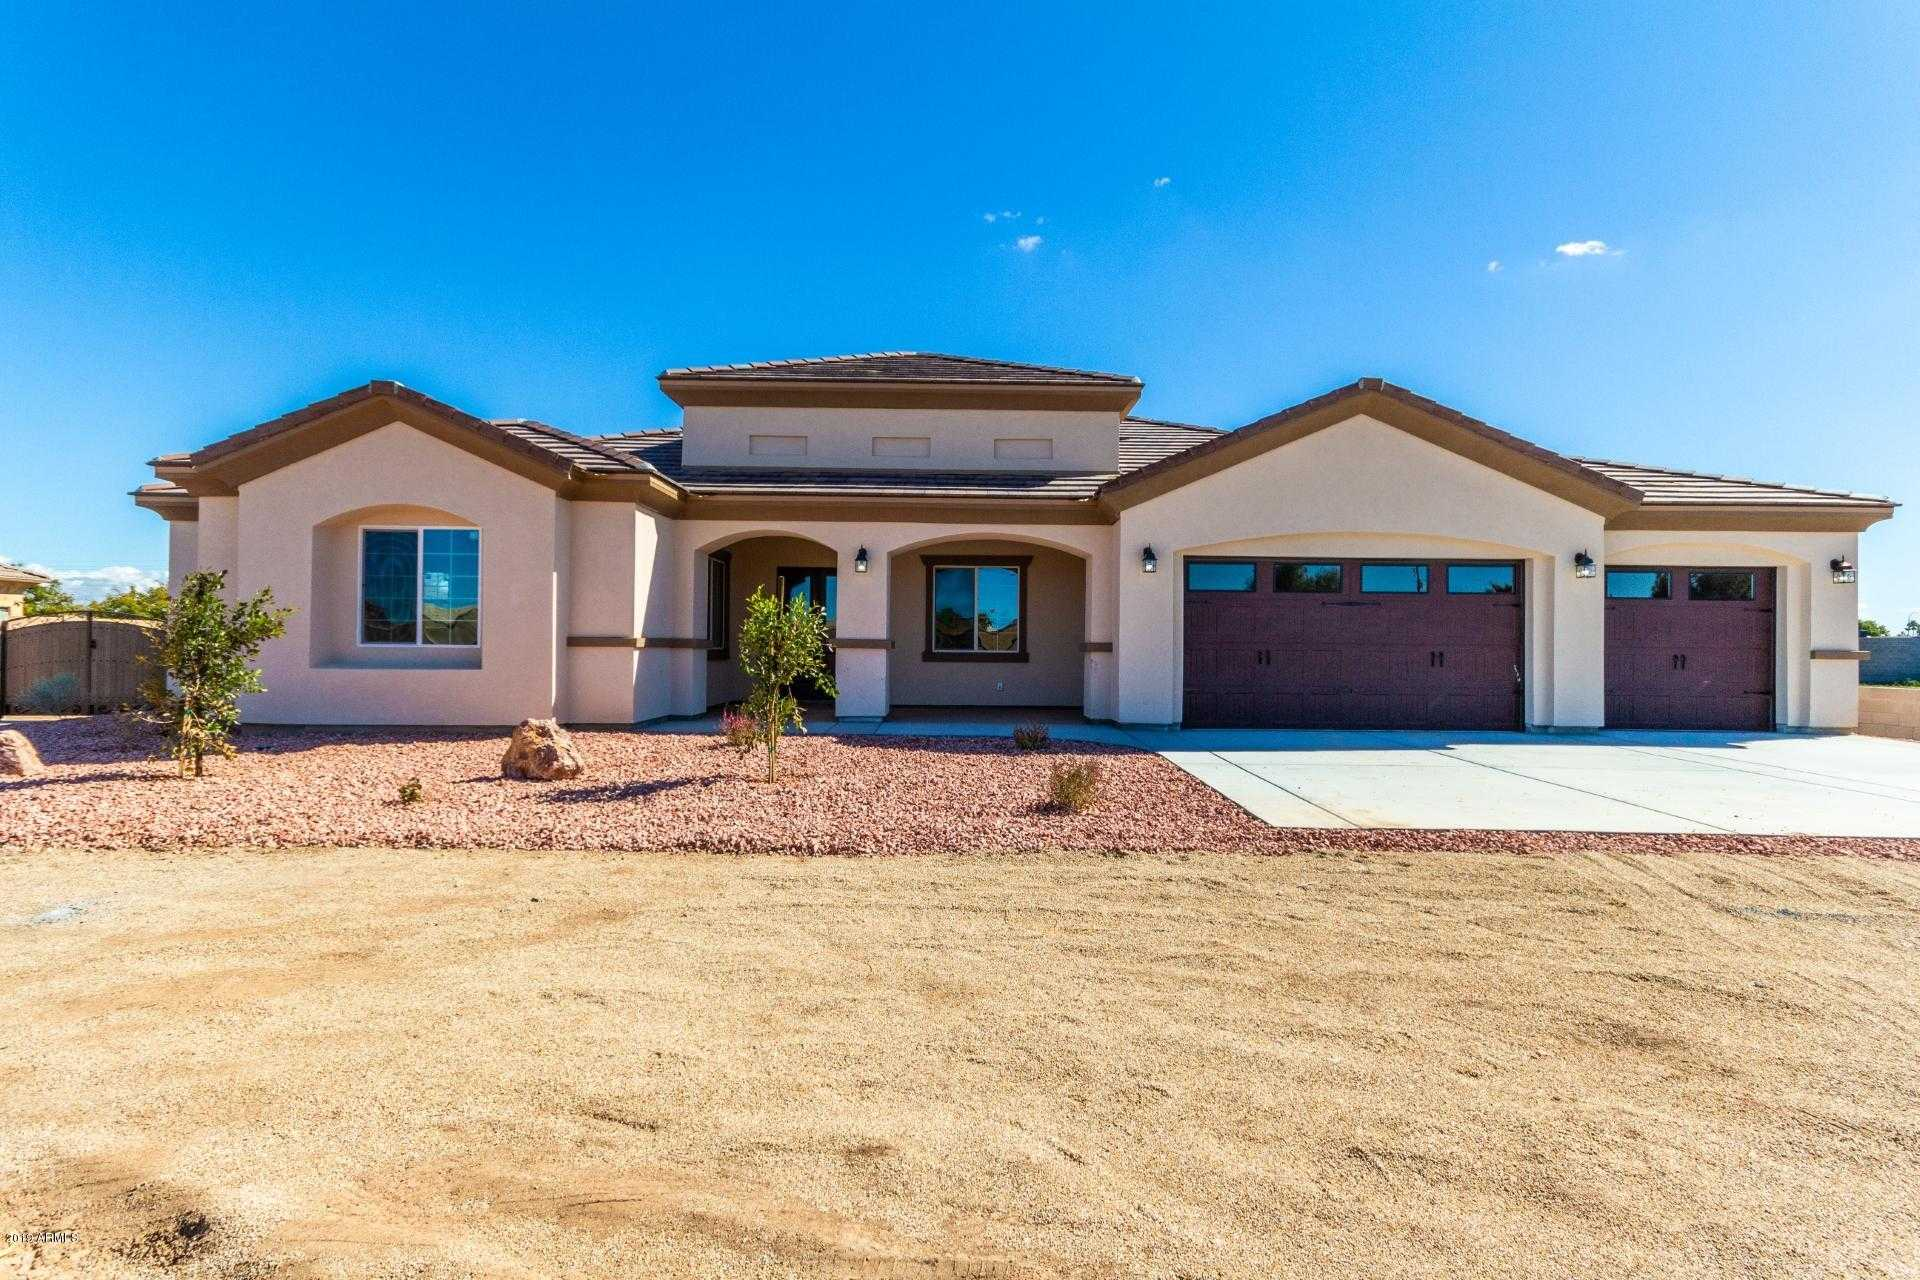 $520,000 - 5Br/6Ba - Home for Sale in Unk, Glendale